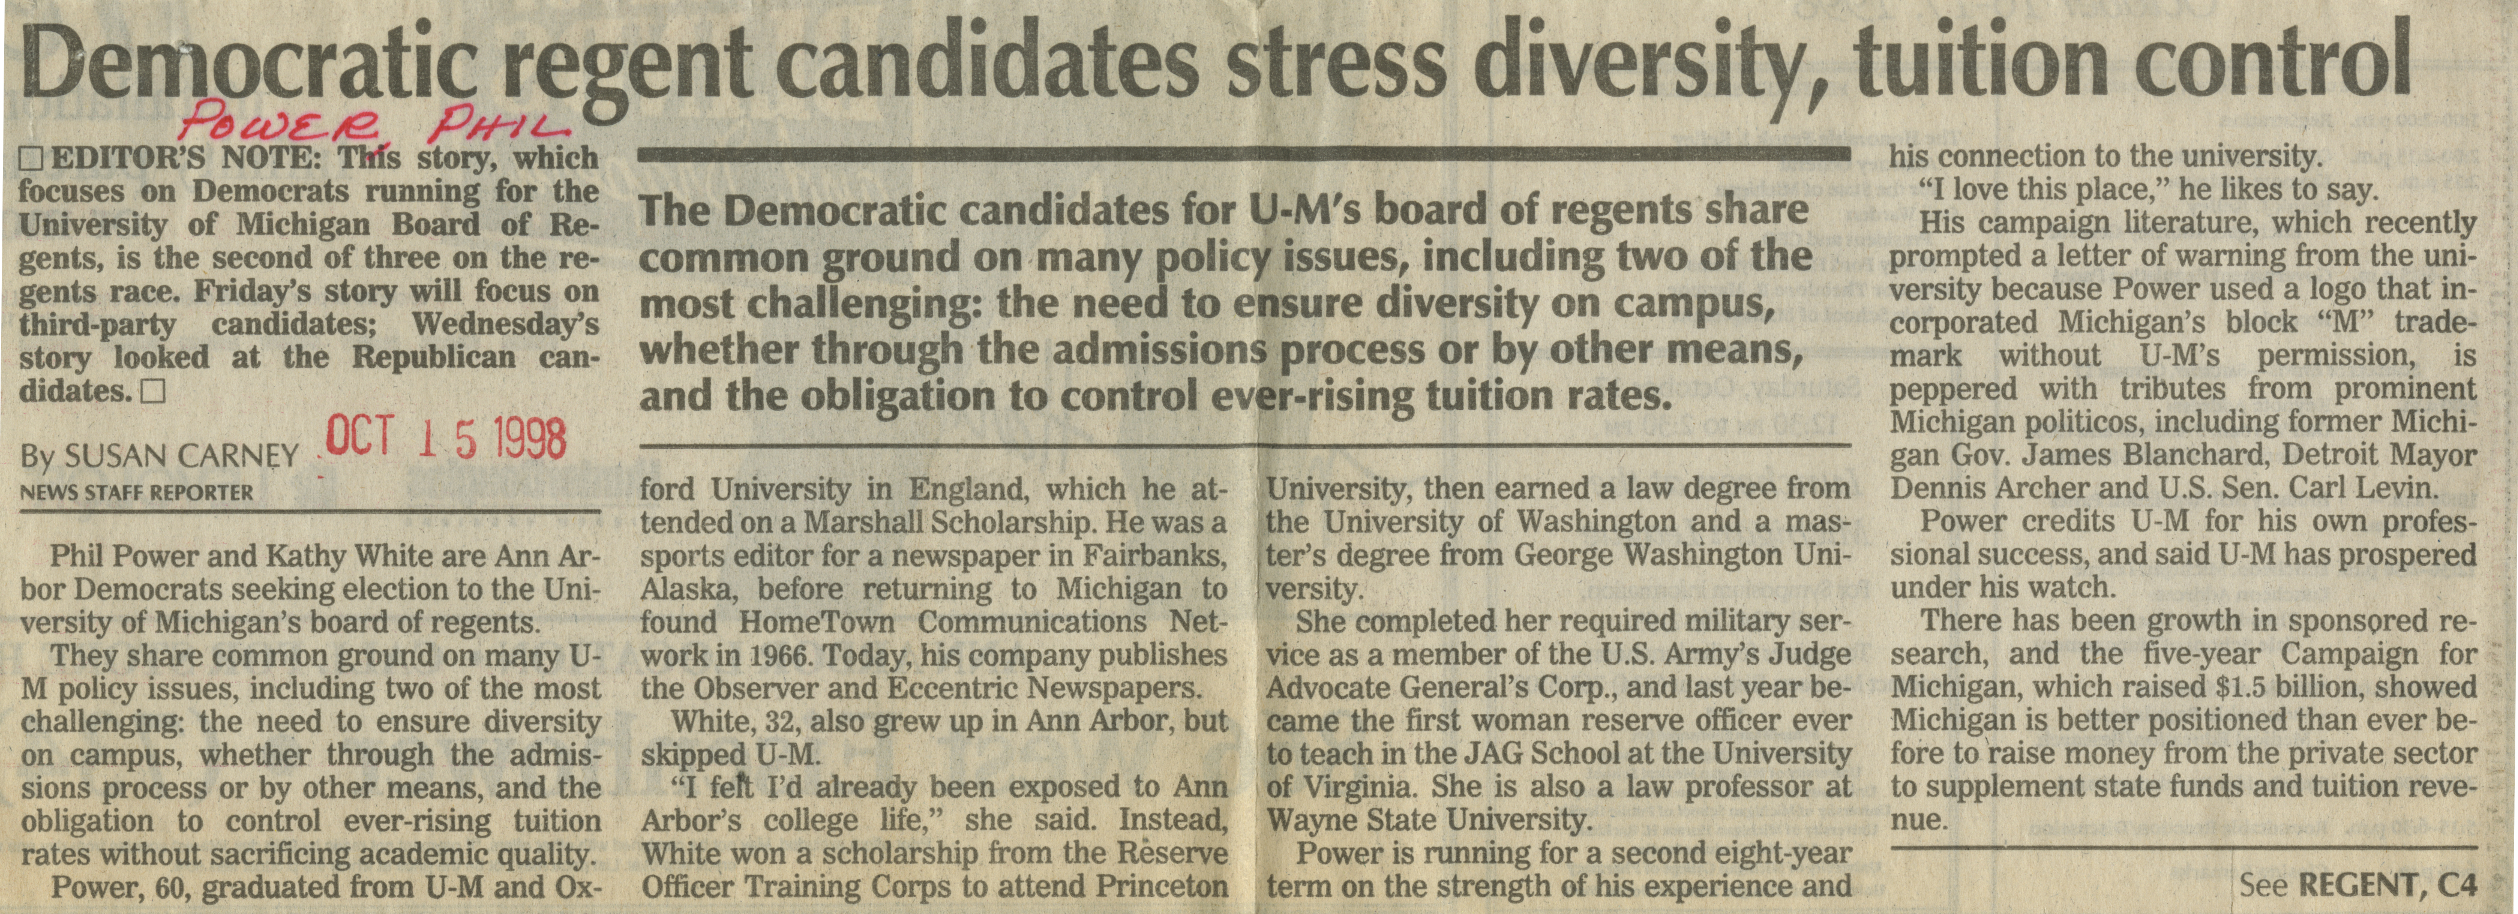 Democratic regent candidates stress diversity, tuition control image